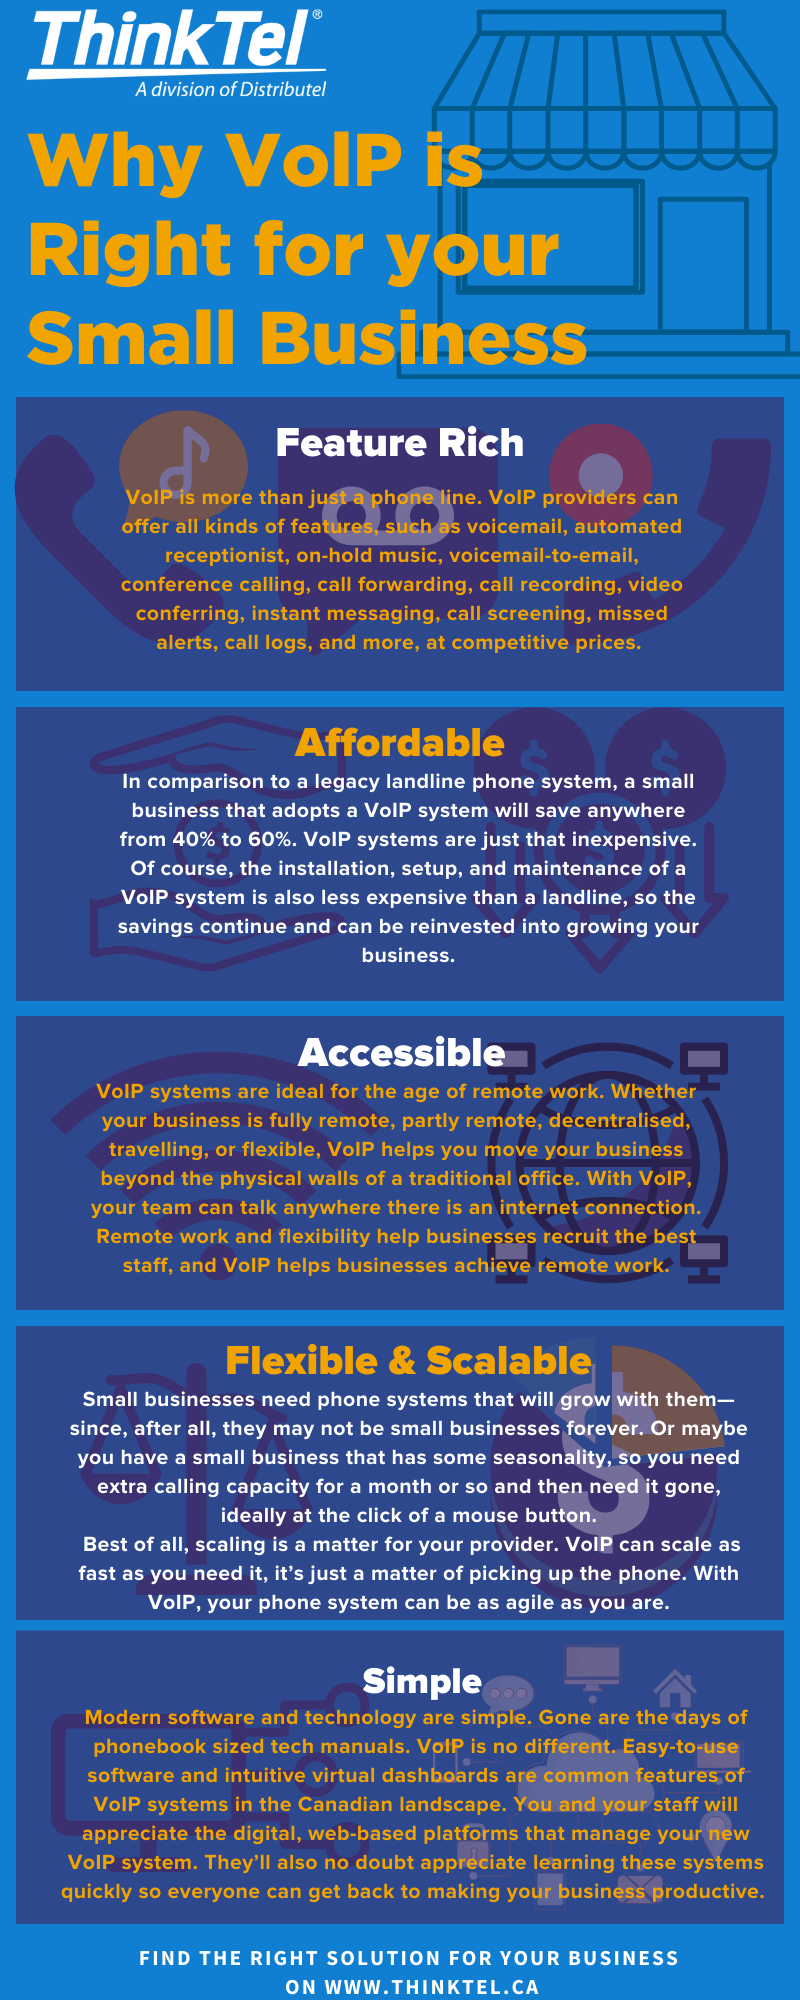 Why VoIP Is Right for Your Small Business